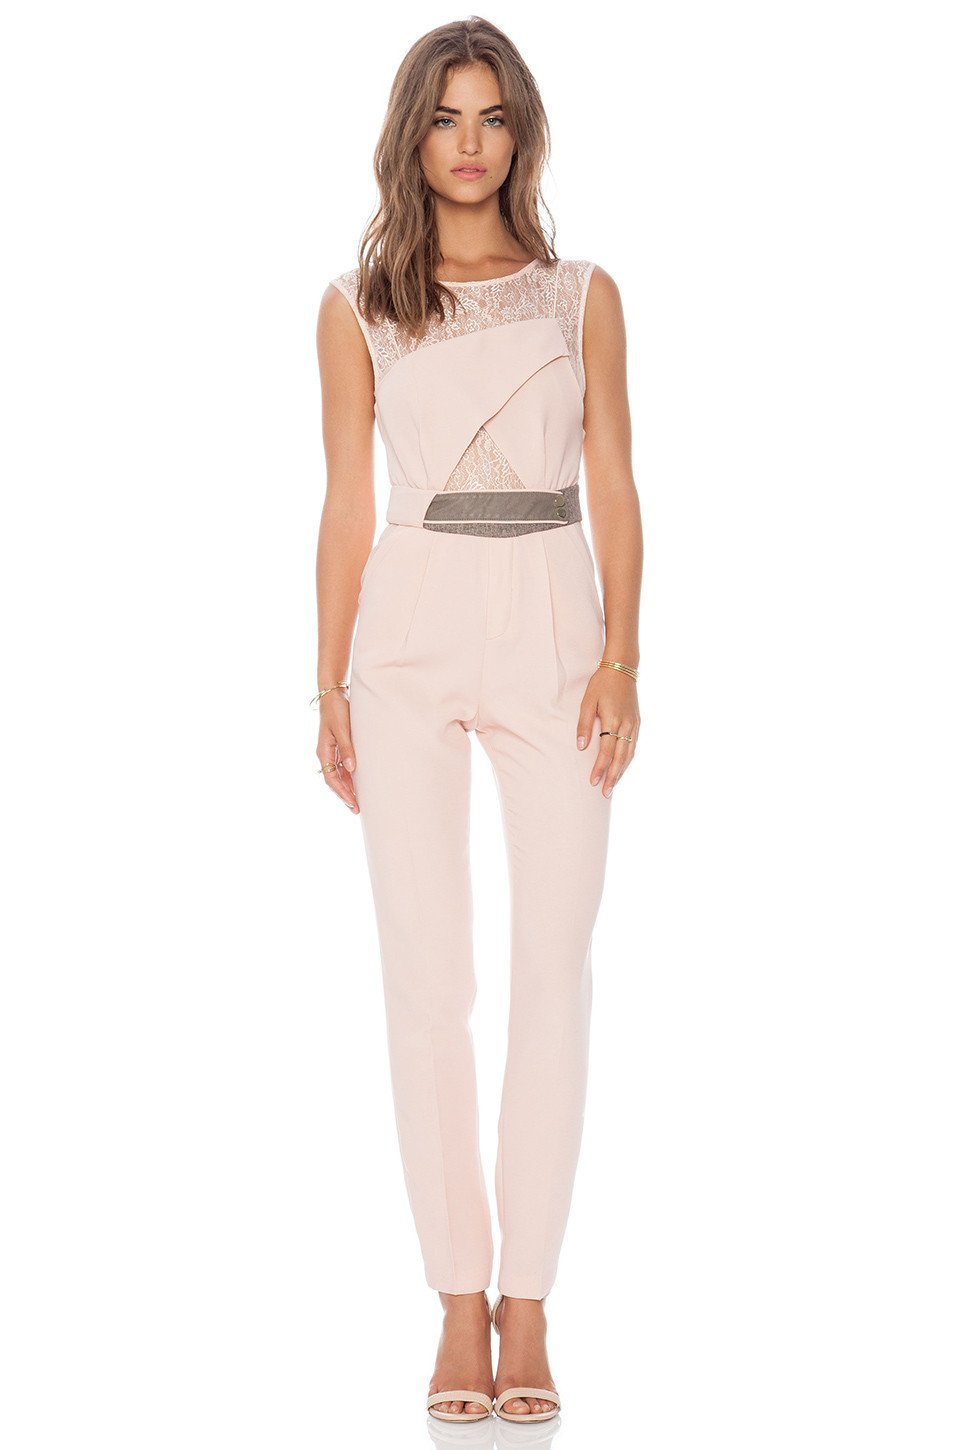 Relam Blush Jumpsuit - Kustom Label - 1